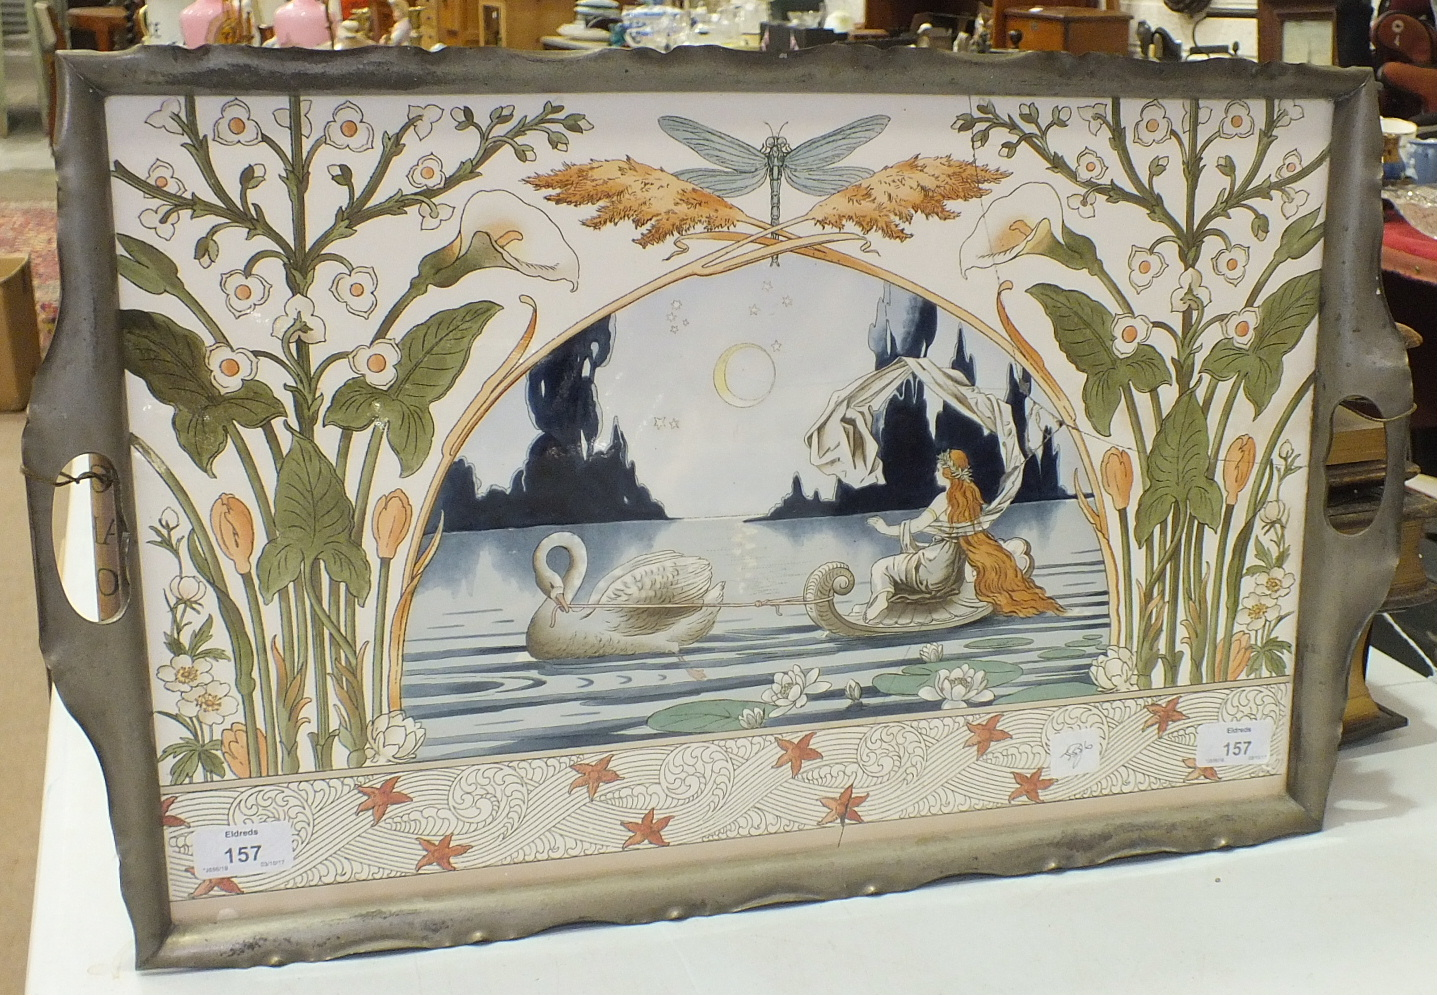 Lot 157 - An Art Nouveau Continental rectangular pottery plaque, the central decoration of a swan towing a